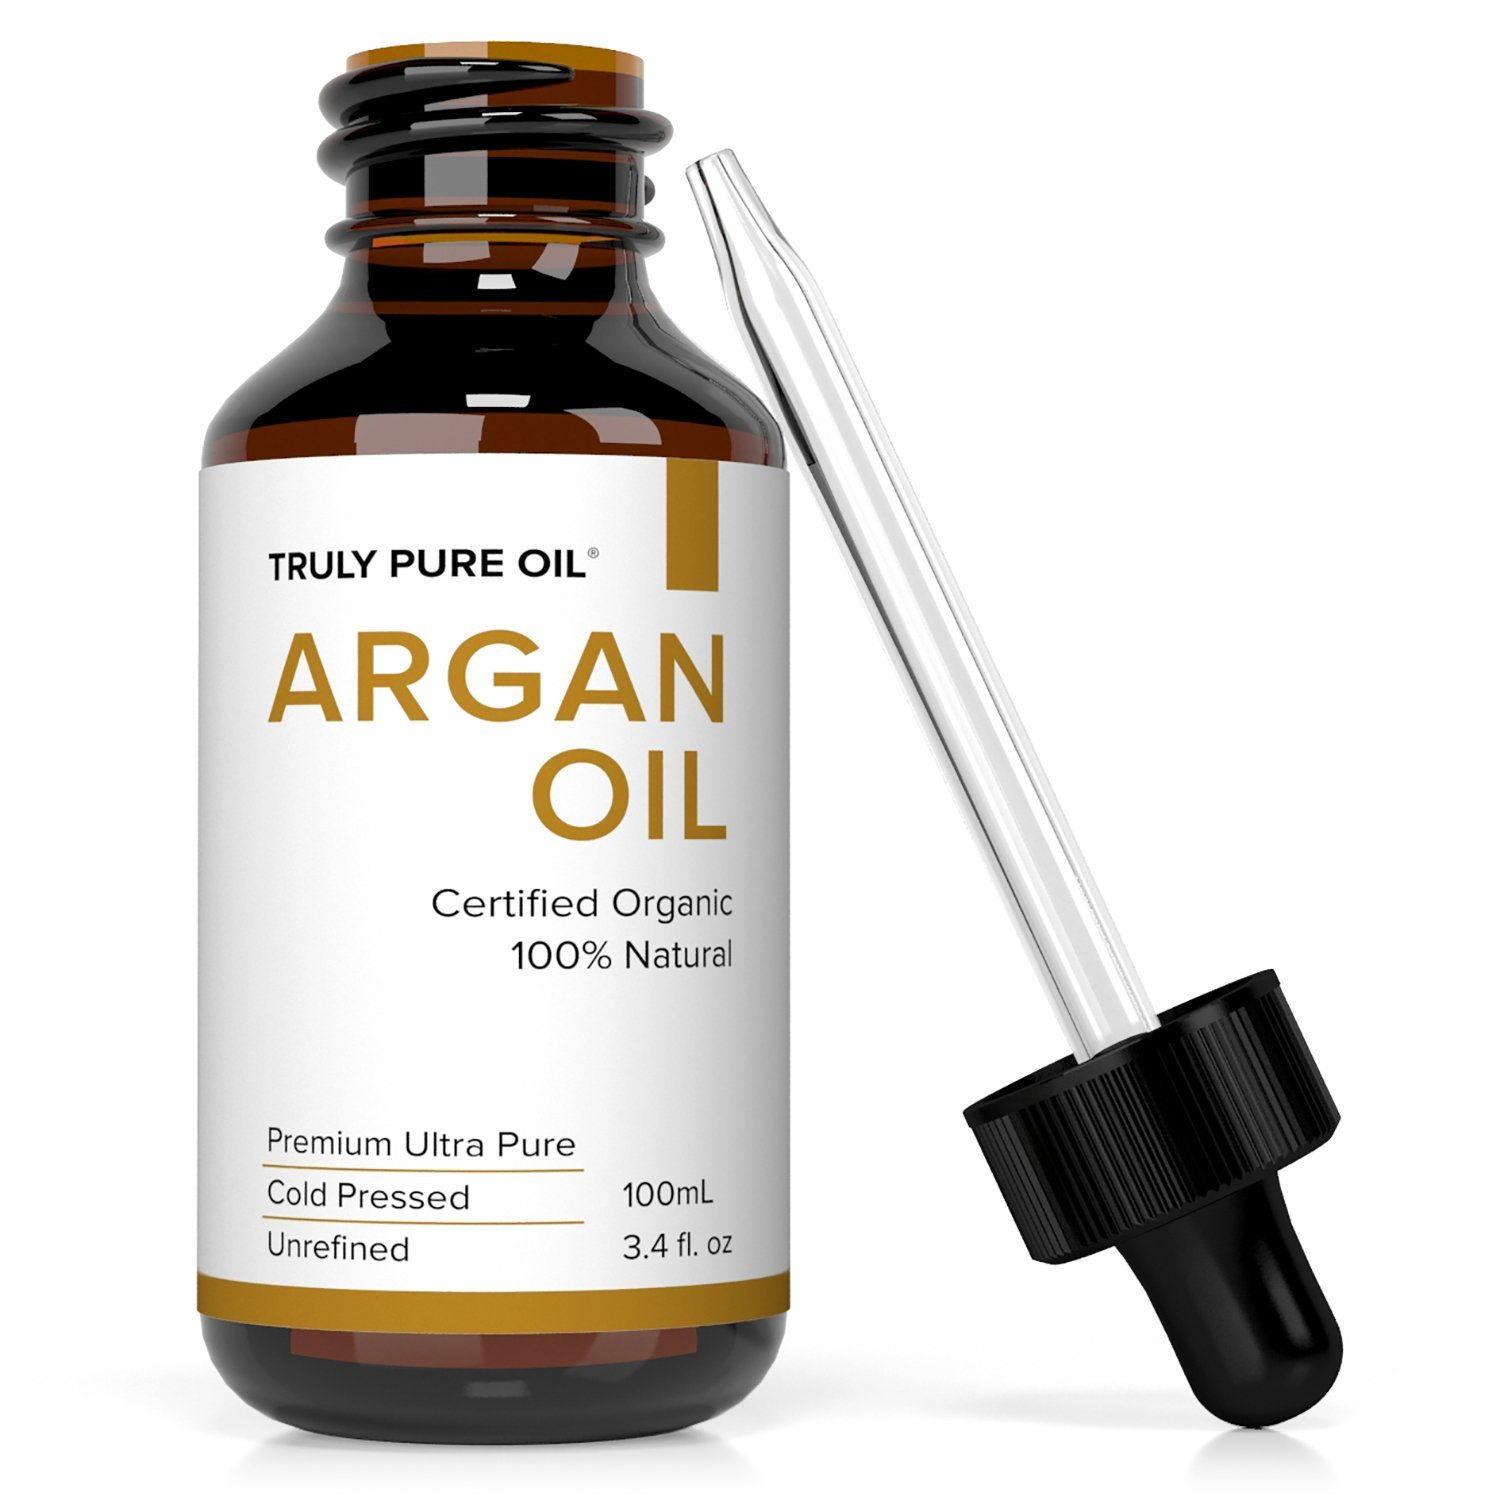 TRULY PURE OIL Moroccan Argan Oil 100% Pure, Cold Pressed, Virgin, Unrefined, Eco Cert & USDA Certified For Skin, Face, Hair, Nails, Dry Lips & Feet | The Anti-Aging, Anti-Wrinkle Beauty Secret (2oz)